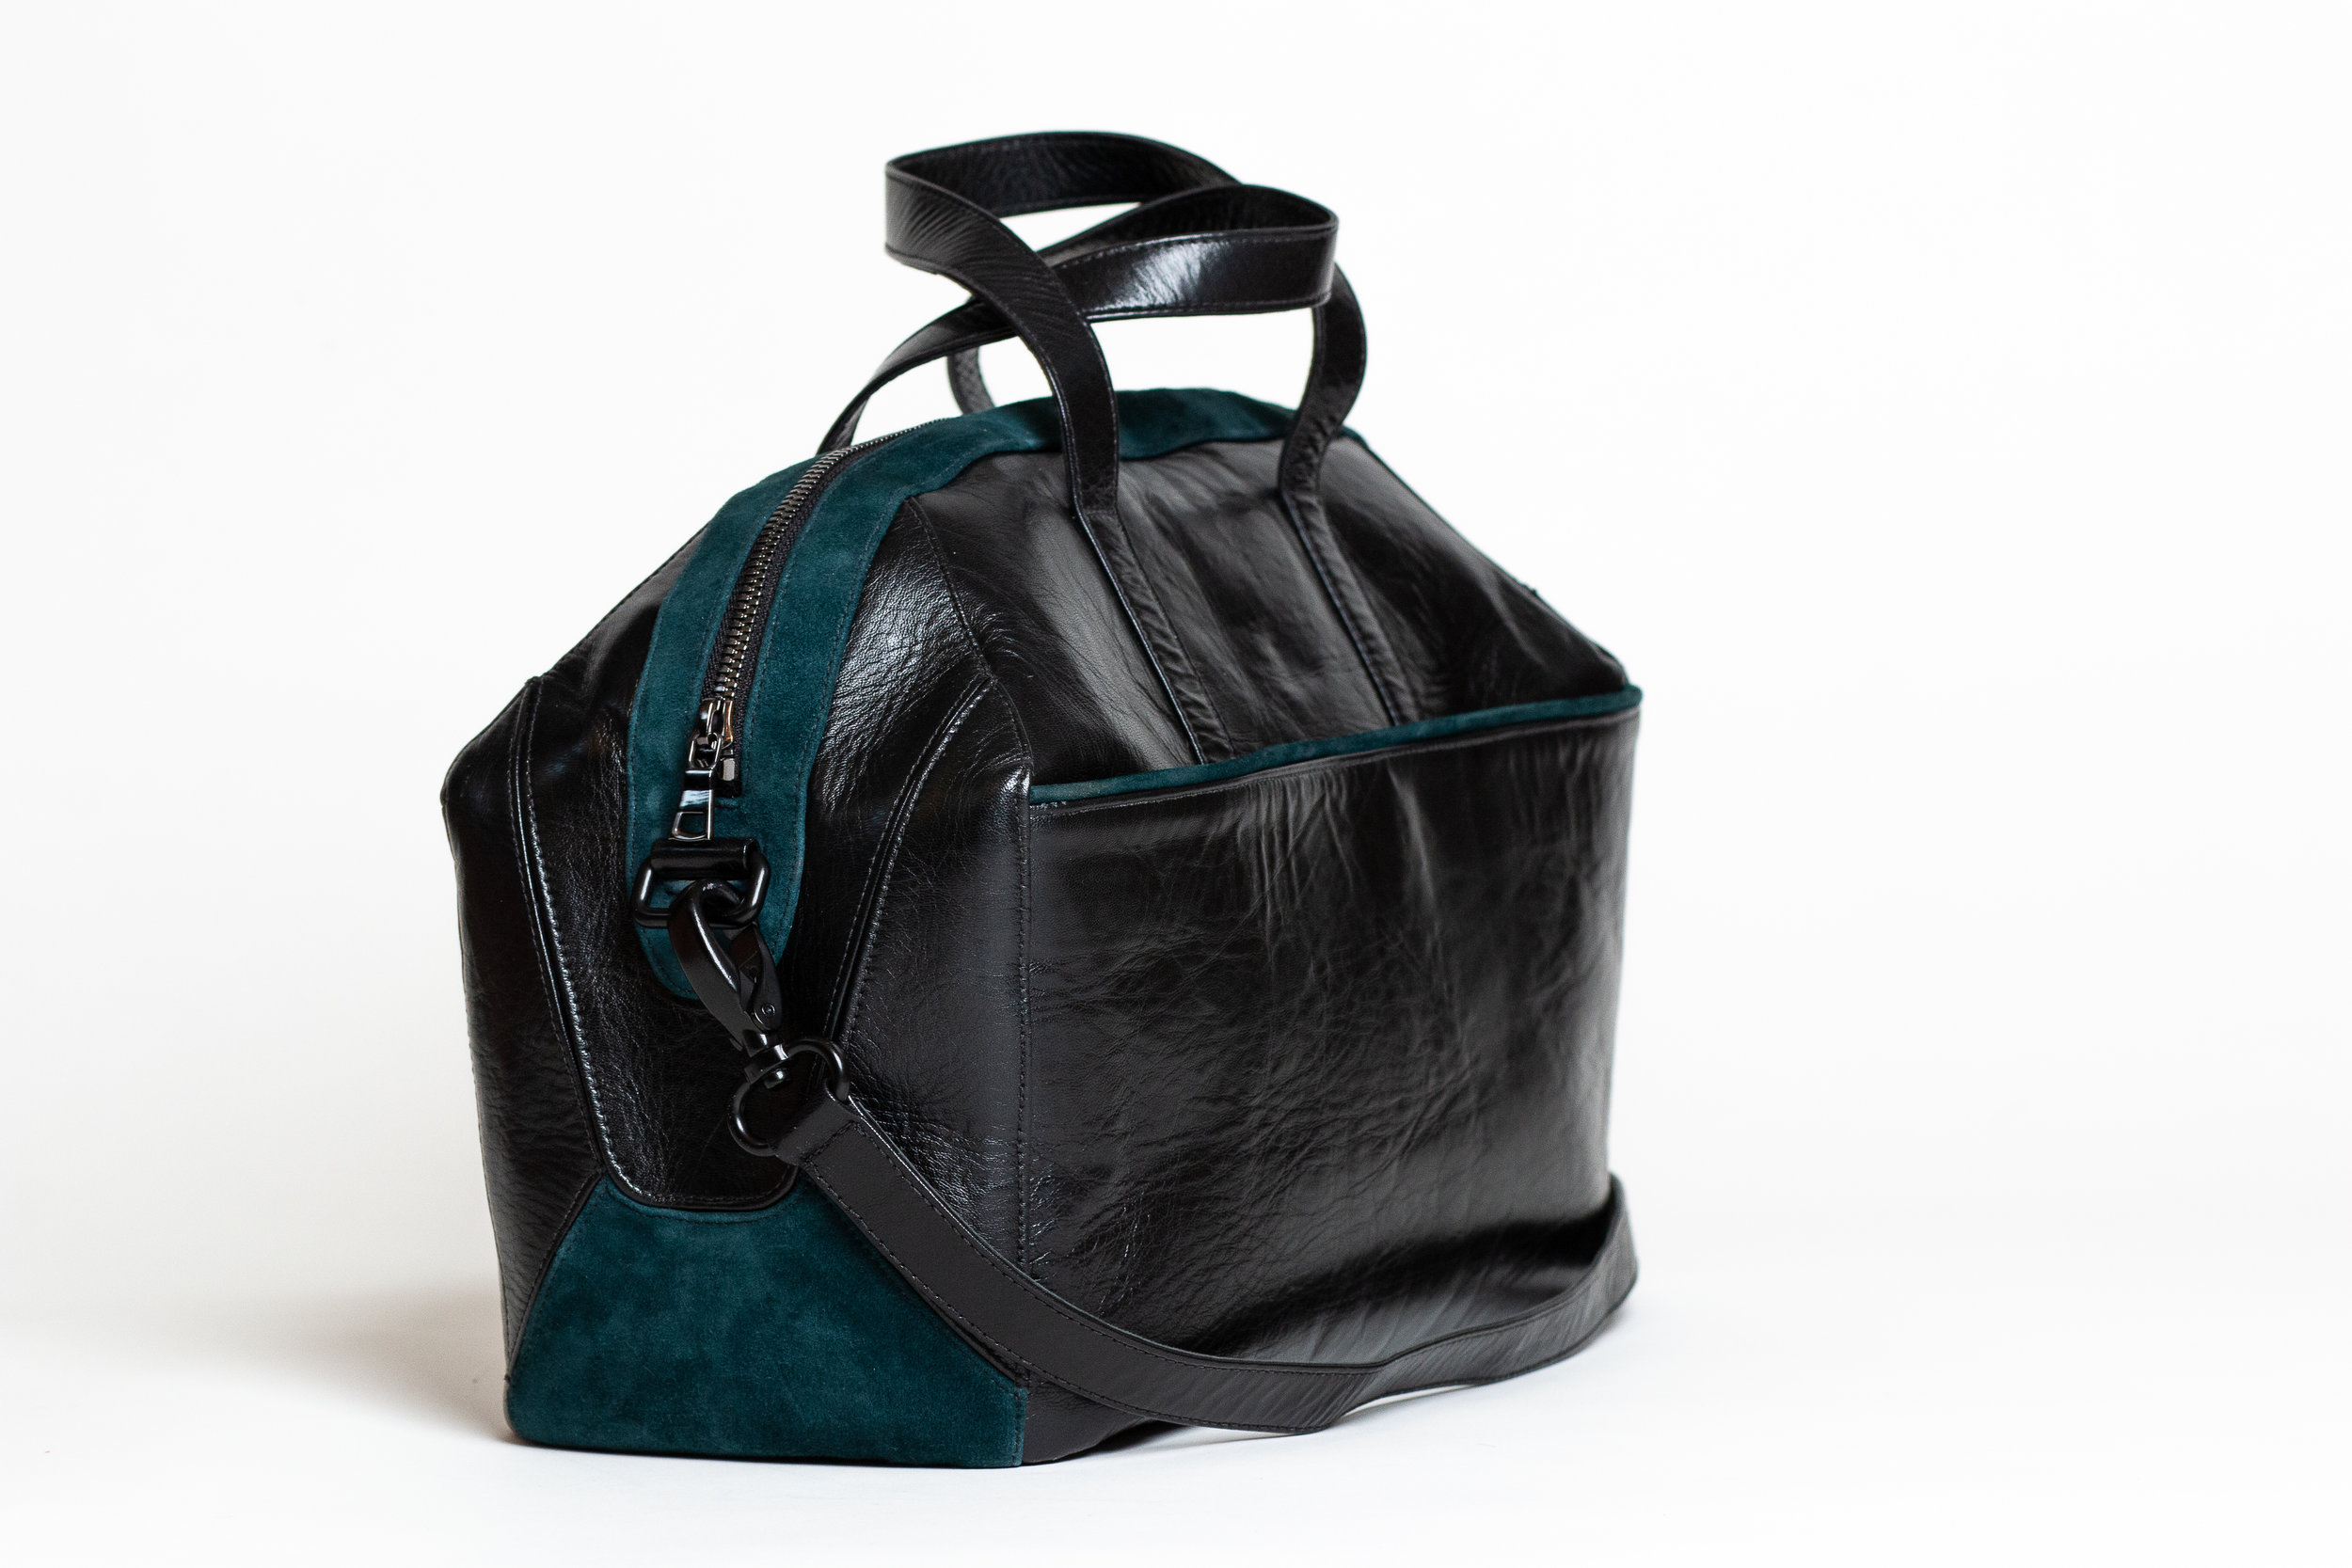 Kodi Bag by Bagley Design